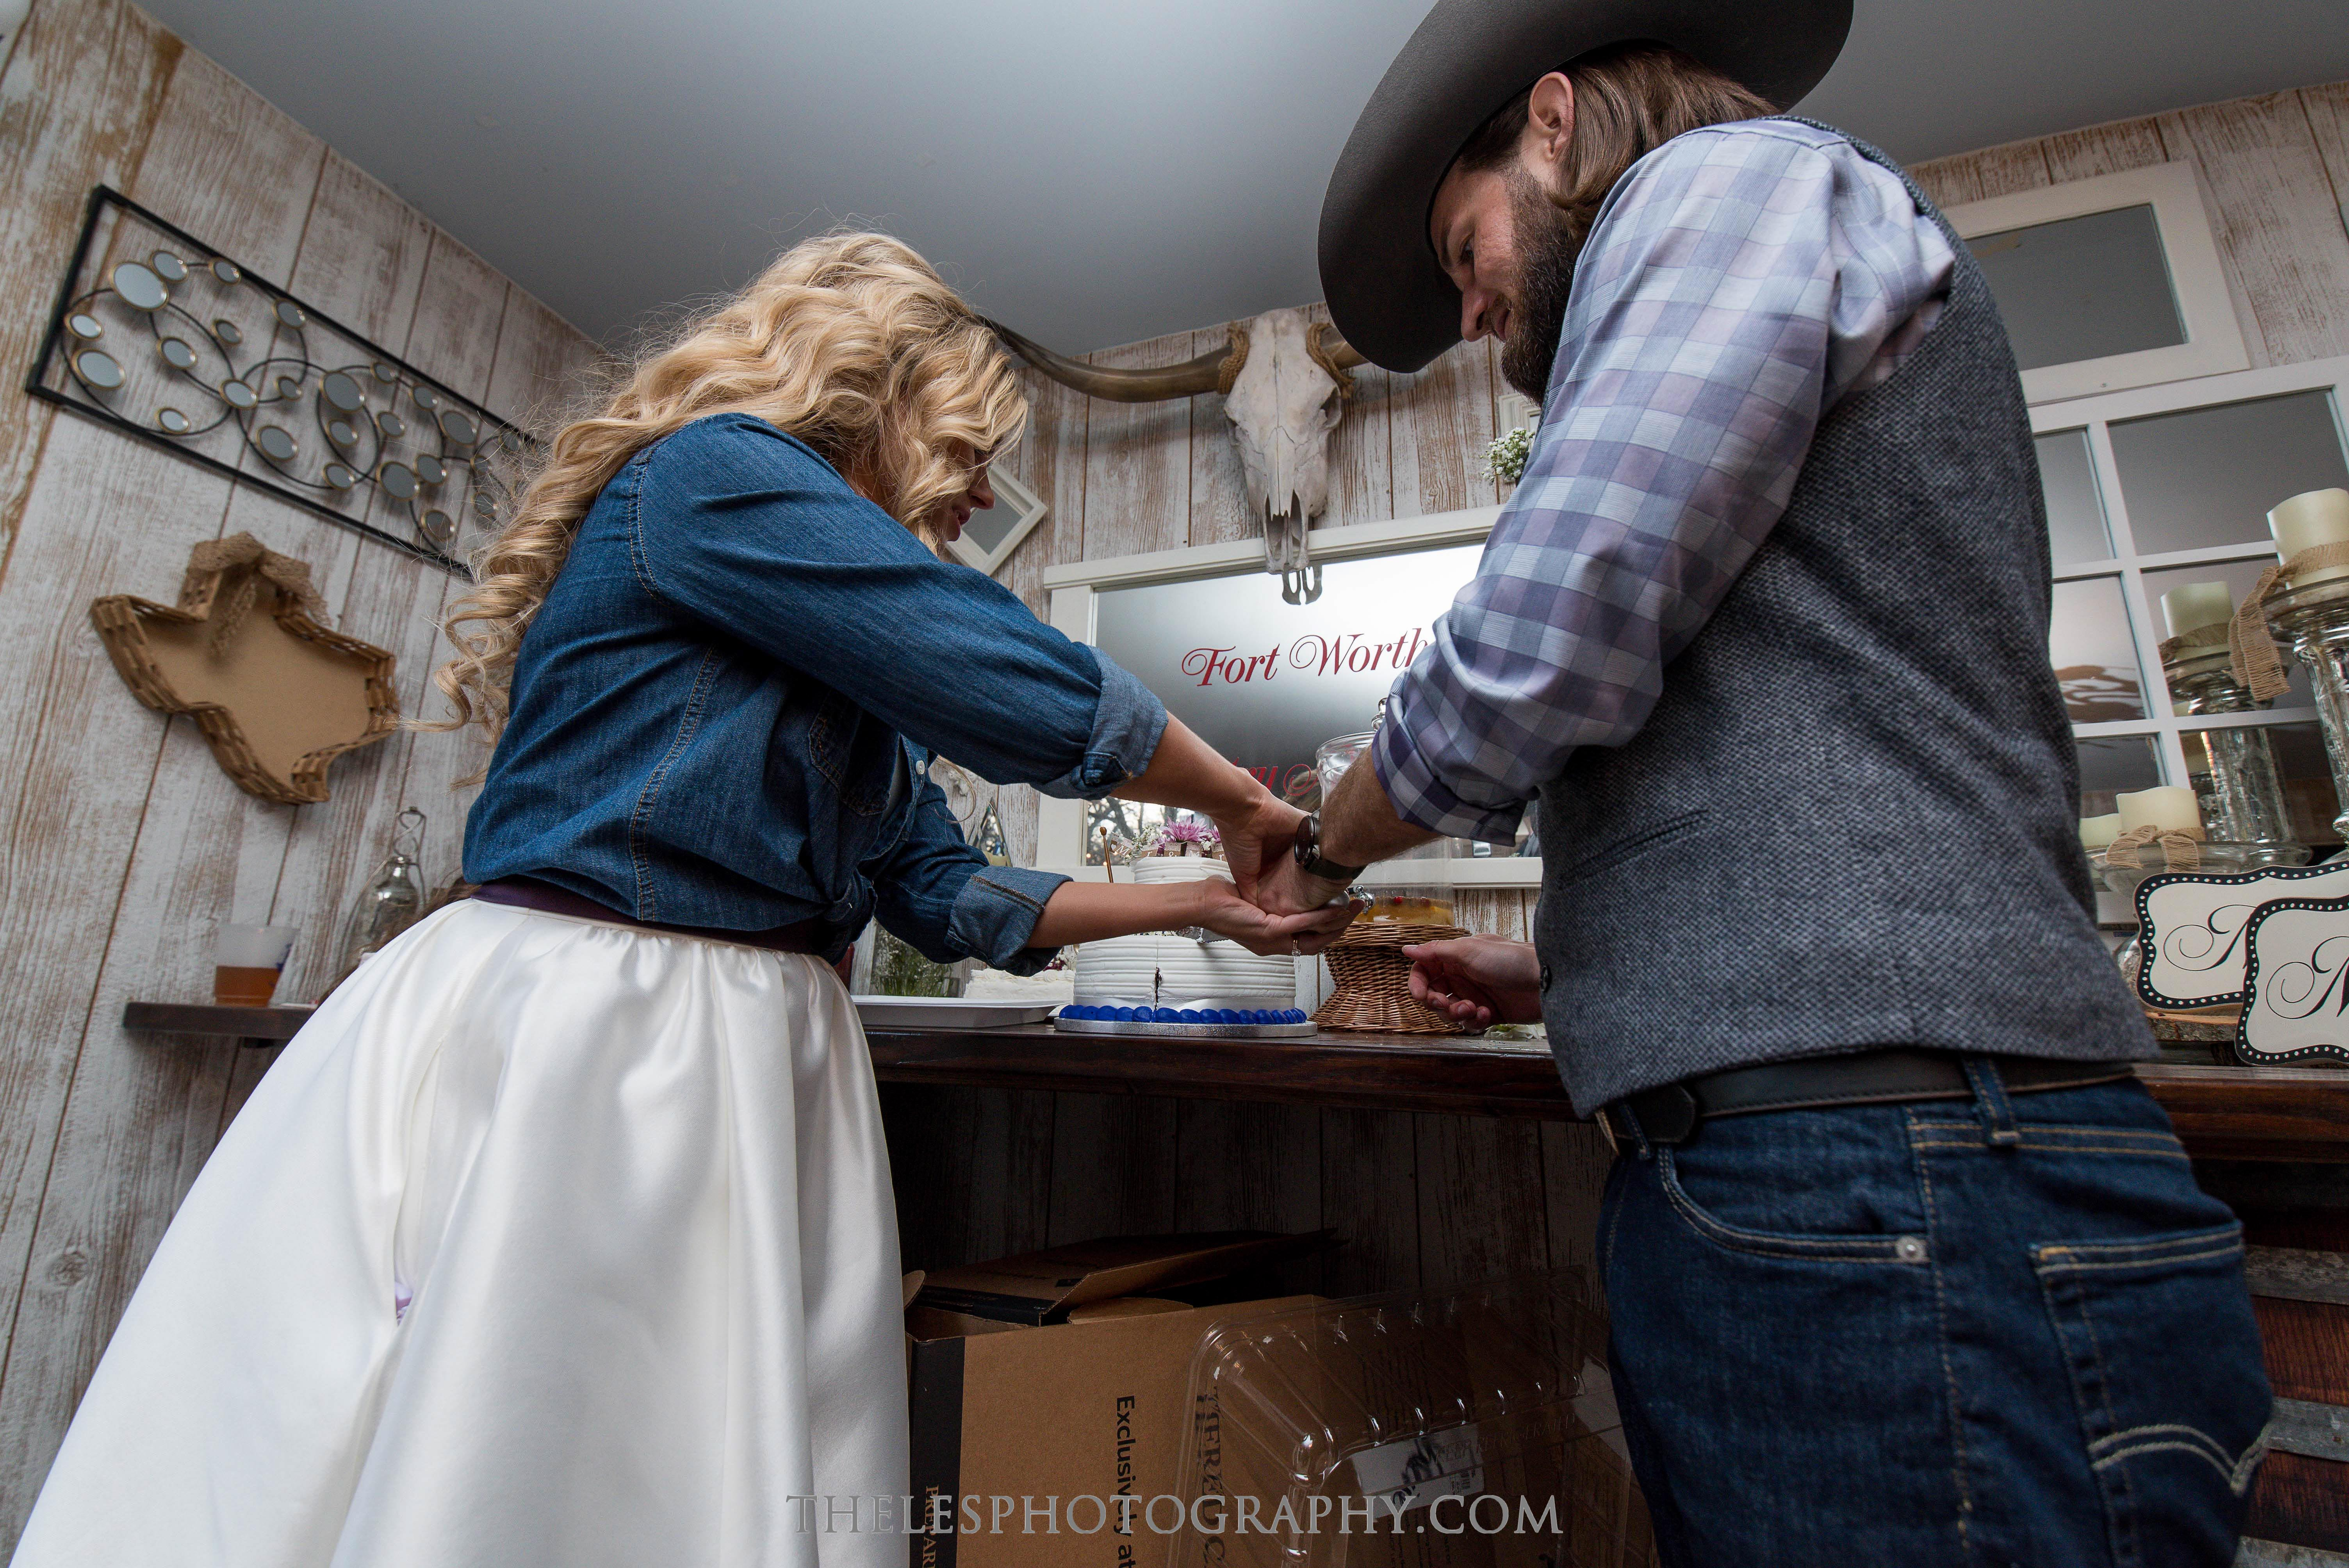 101 Dallas Wedding Photography - Photographer - The Les Photography - Fort Country Memories Wedding